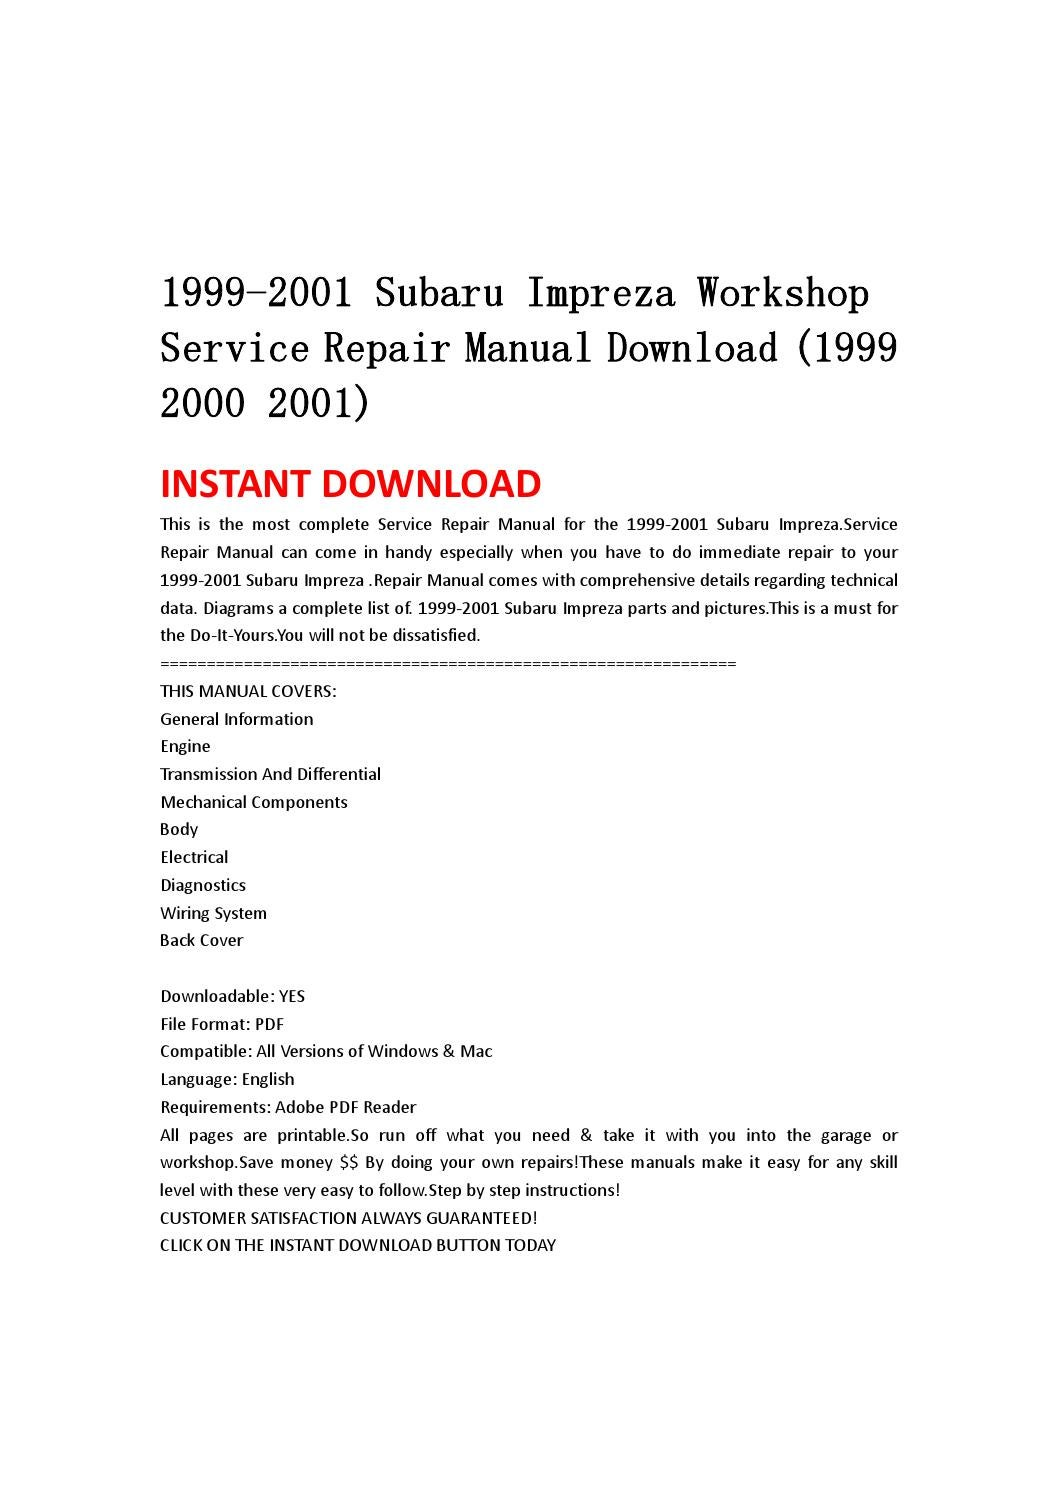 1999 2001 Subaru Impreza Workshop Service Repair Manual Download Engine Diagram 2000 By Fjhsegfnnse Issuu